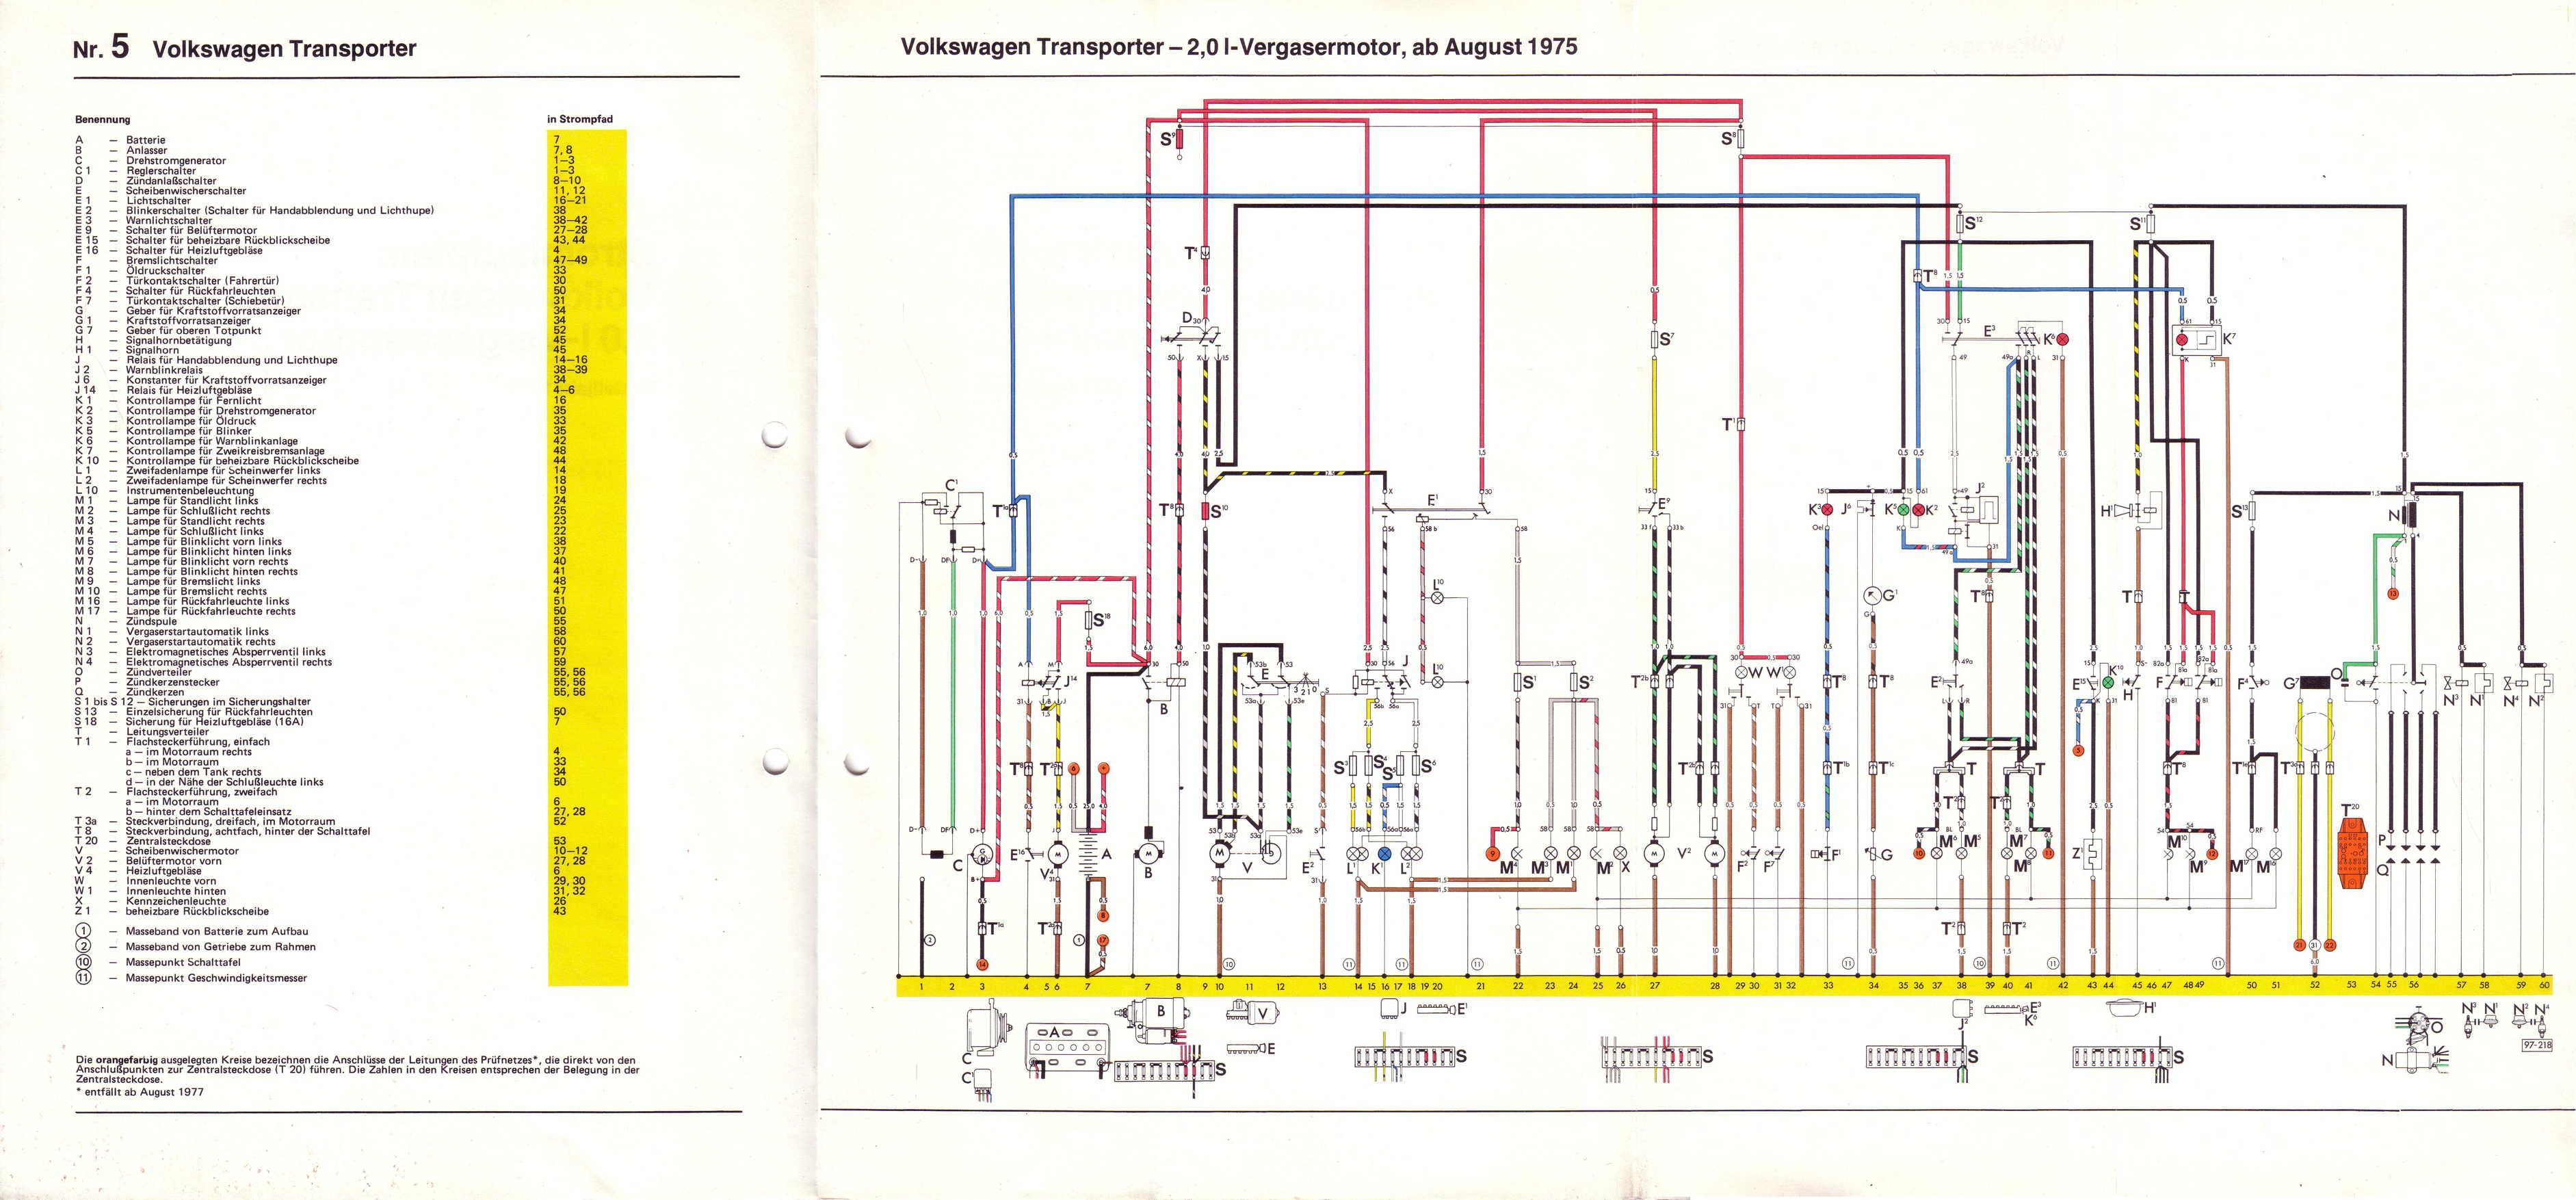 1975 08 vw t2 2l wiring diagram?resize\\\\\\\\\\\\\\\\\\\\\\\\\\\\\\\\\\\\\\\\\\\\\\\=665%2C310 joliet jake wiring diagram,jake \u2022 limouge co  at bakdesigns.co